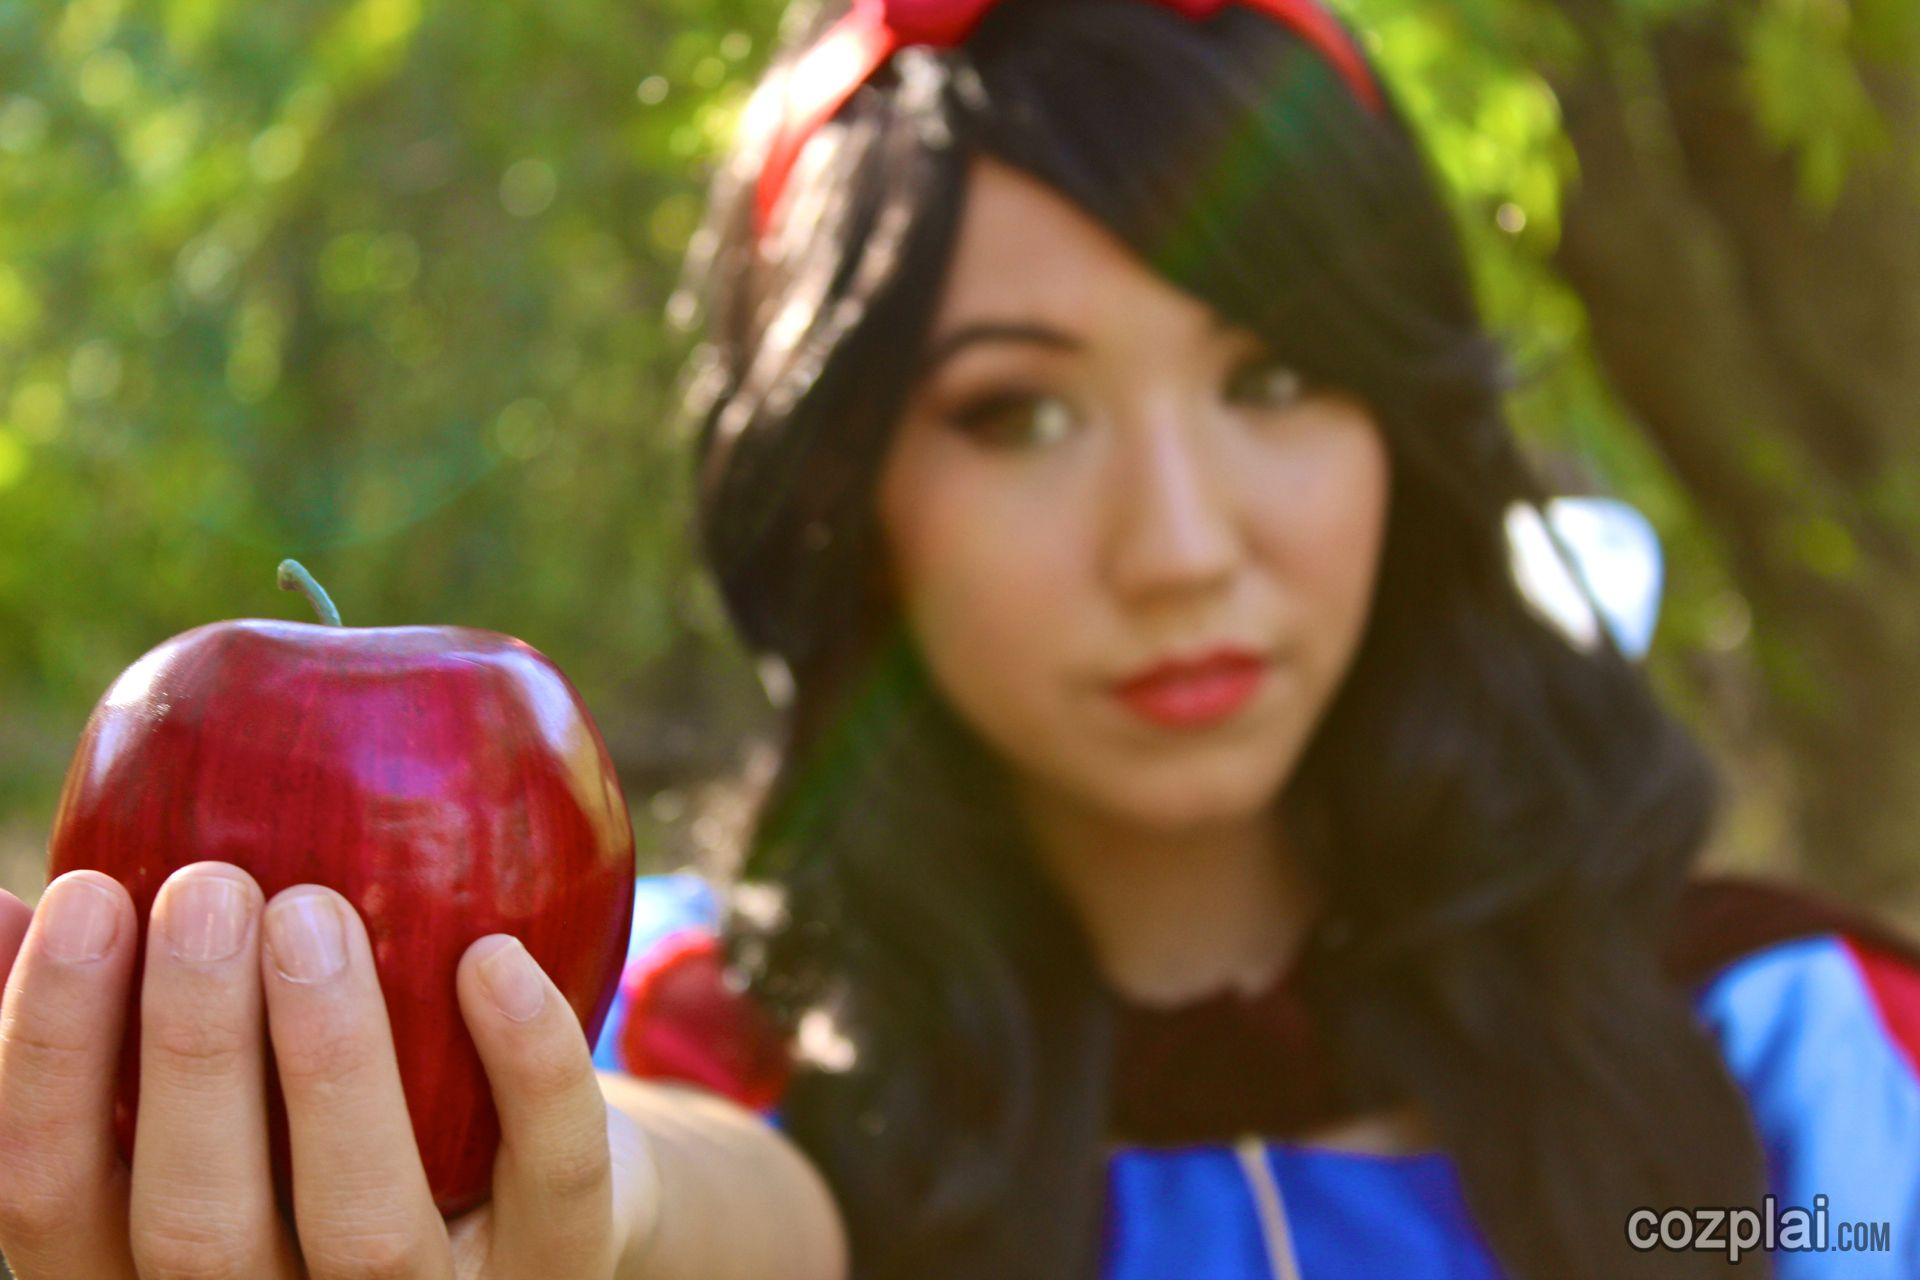 Snow White Cosplayed By Kalel Cullen Queenbeeuty Cosplaisensei Wonderlandwardrobe On Youtube She Seems Like Such A Kind Hearted Person But Kalel Y U No S